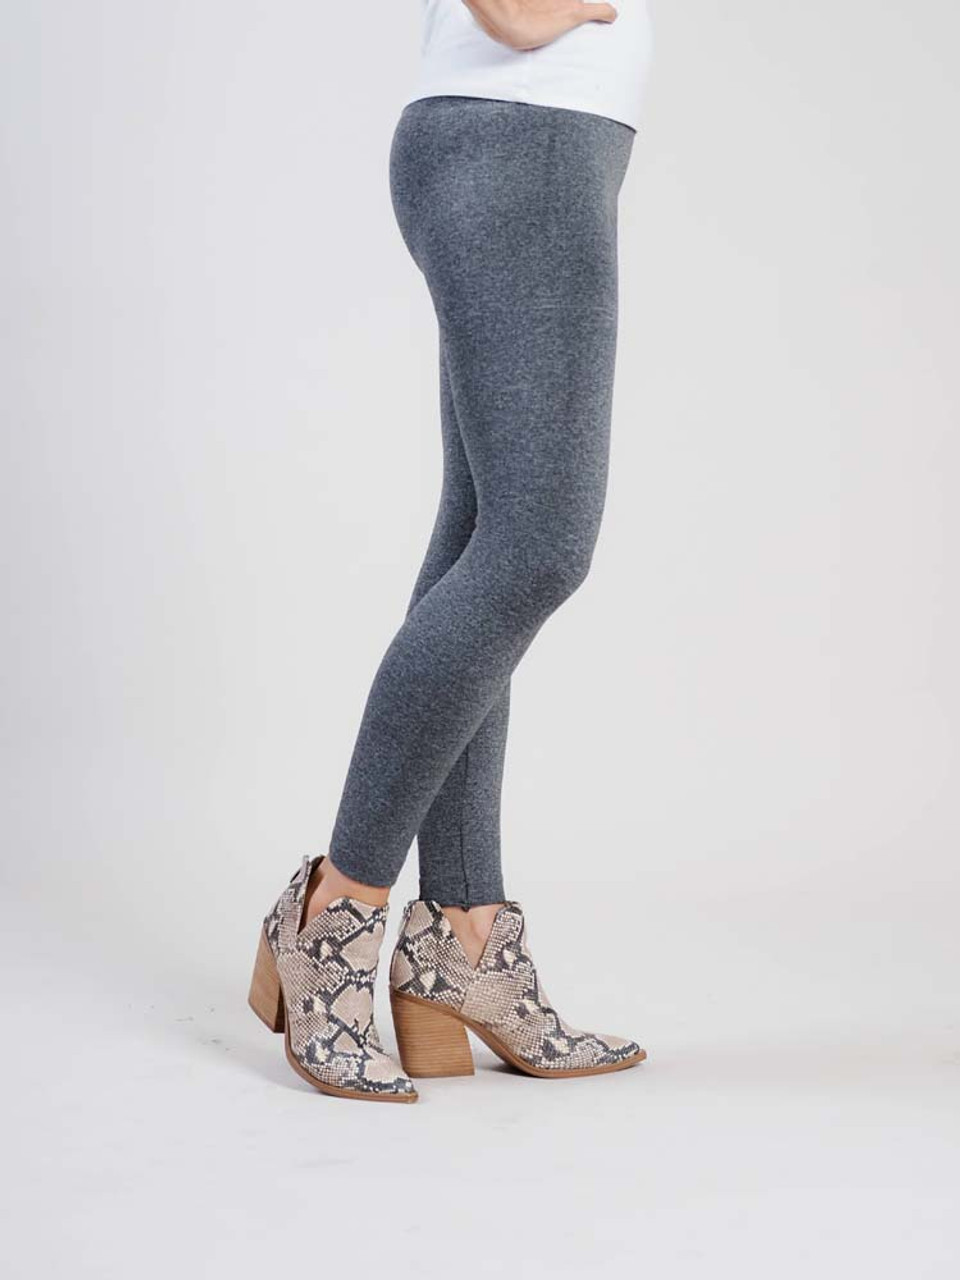 """Gray Comfortable and versitable fleece-lined leggings, breathable fabric, smooth mid-rise fit, seamless, flattering 4"""" waistband, full length cut with banded ankle"""